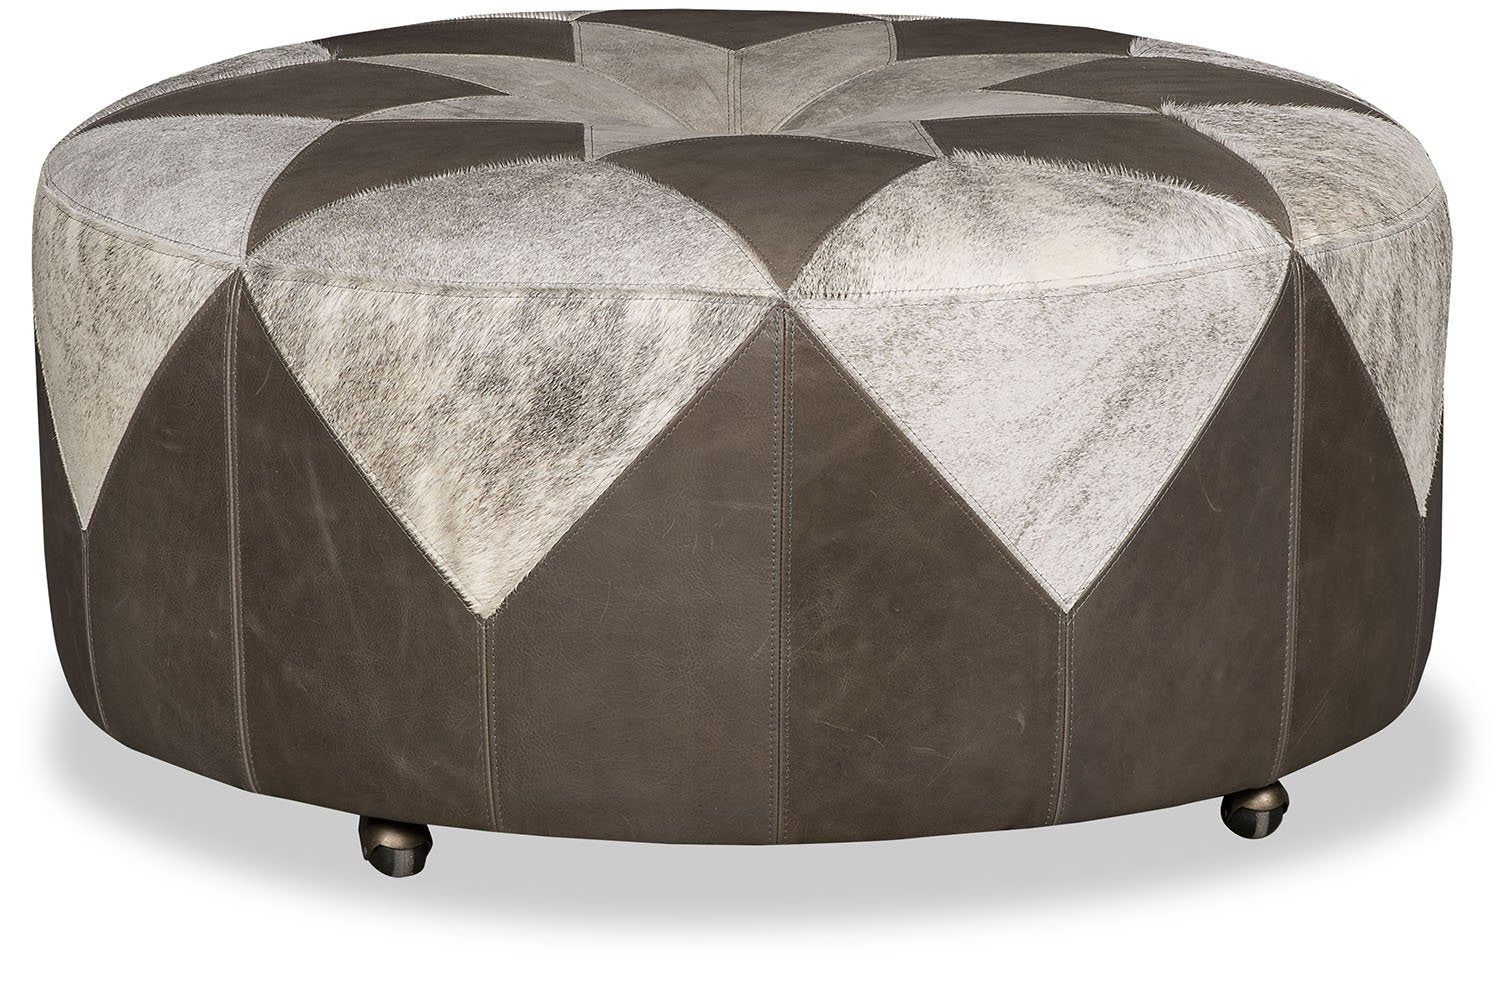 Tristin Patches Leather and Cowhide Ottoman - Grey